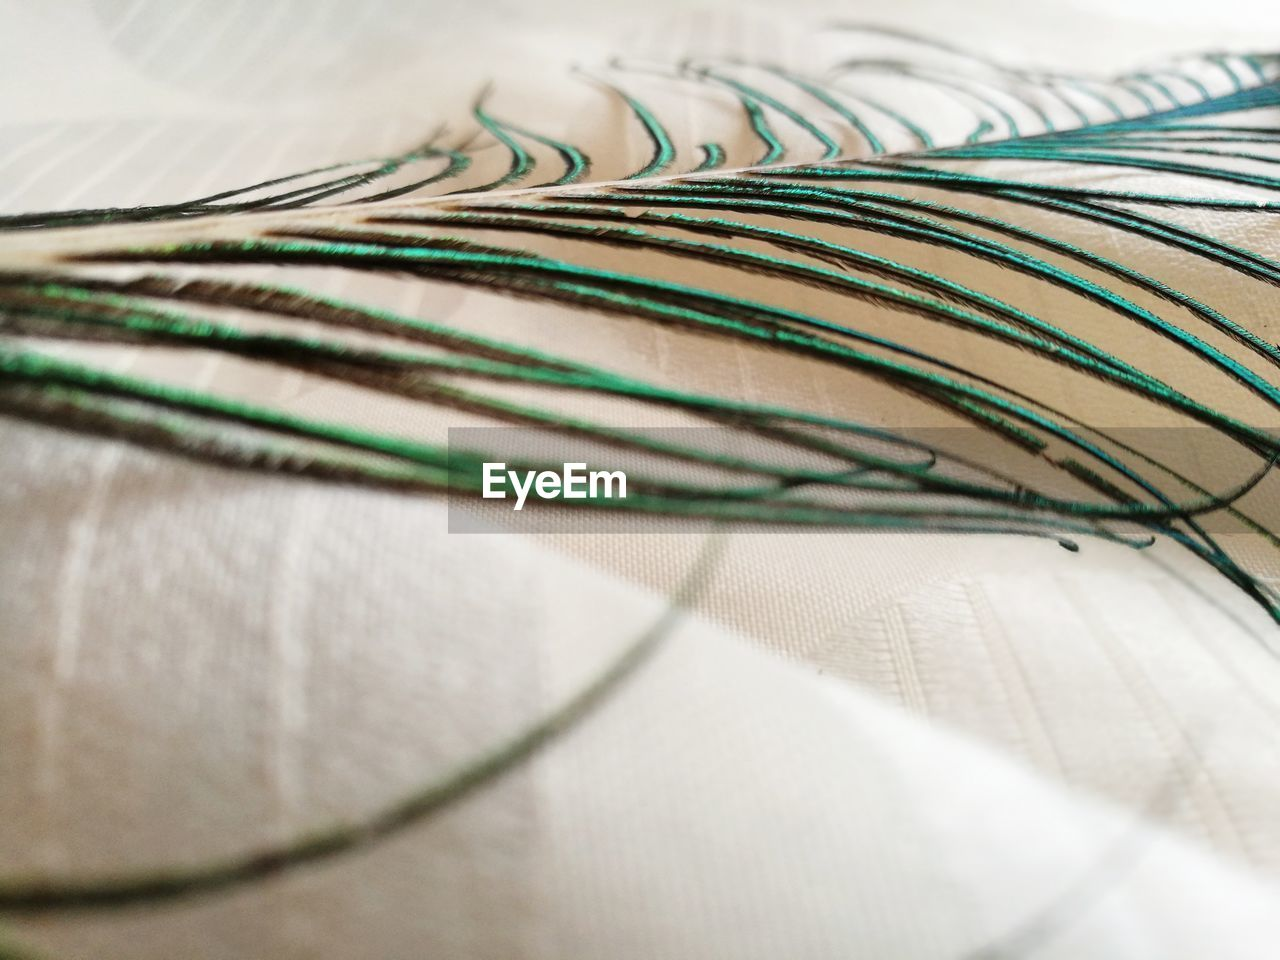 selective focus, textile, close-up, still life, indoors, no people, pattern, table, green color, bed, white color, high angle view, paper, cable, complexity, furniture, day, thread, striped, multi colored